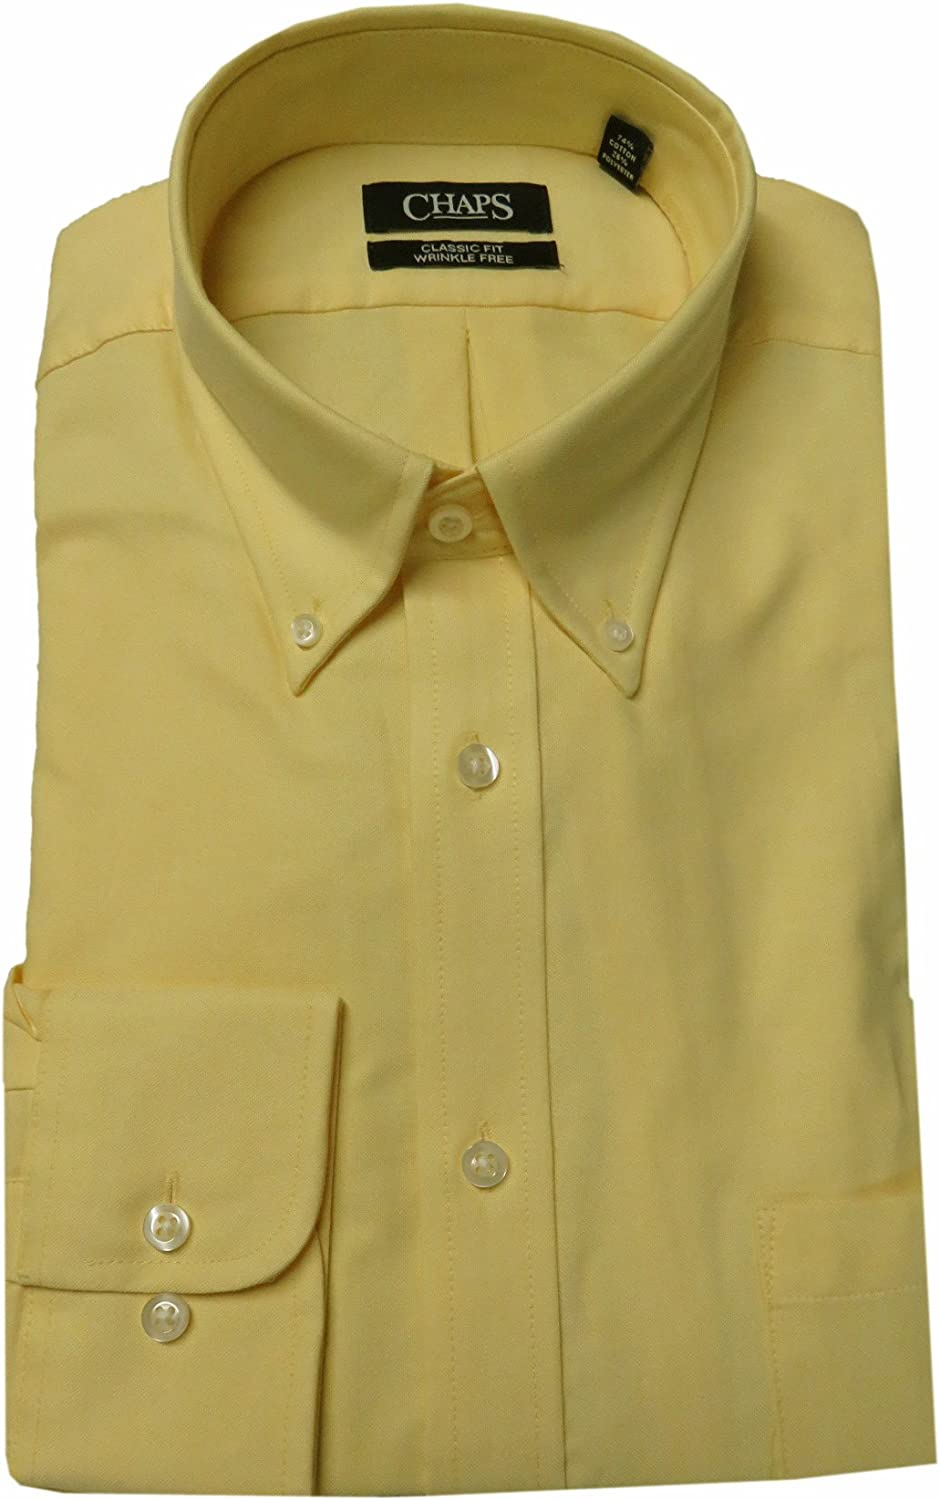 Chaps Mens Performance Classic-Fit Oxford Solid Dress Shirt 15-15.5 34//35, Canary